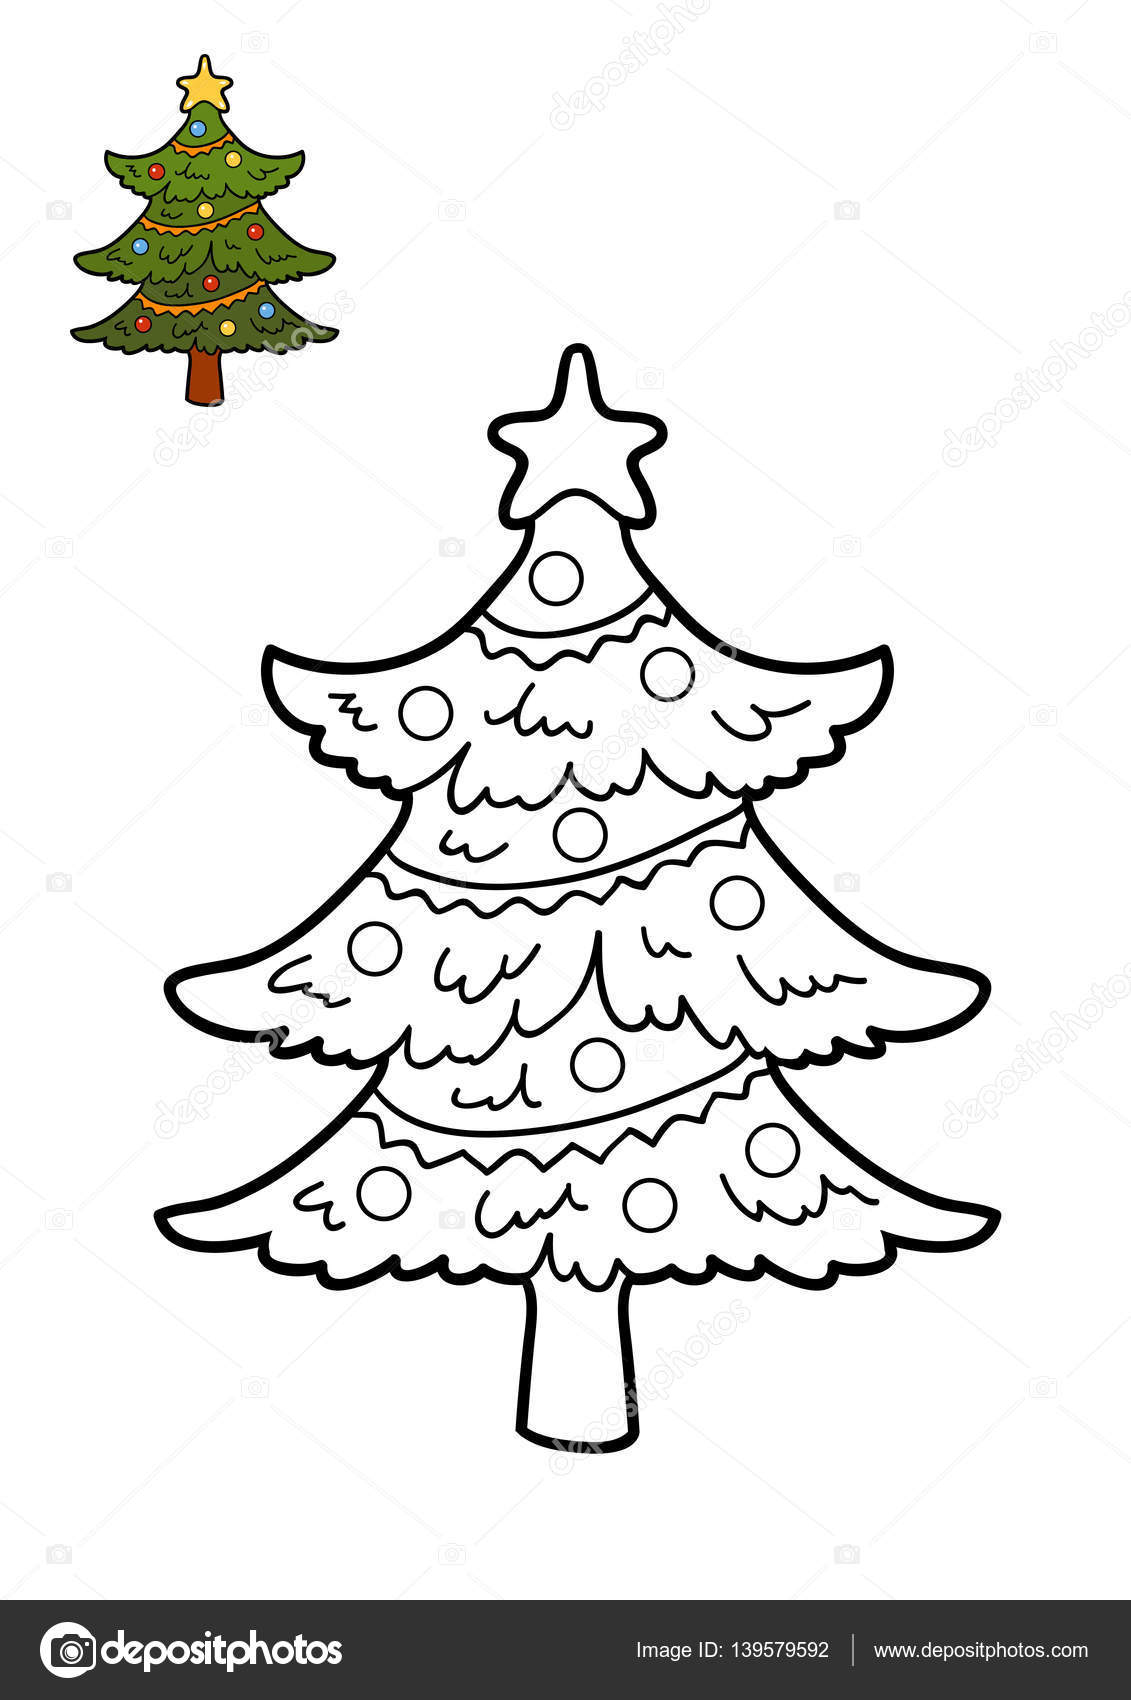 Coloring book, Christmas tree — Stock Photo © ksenya_savva #139579592